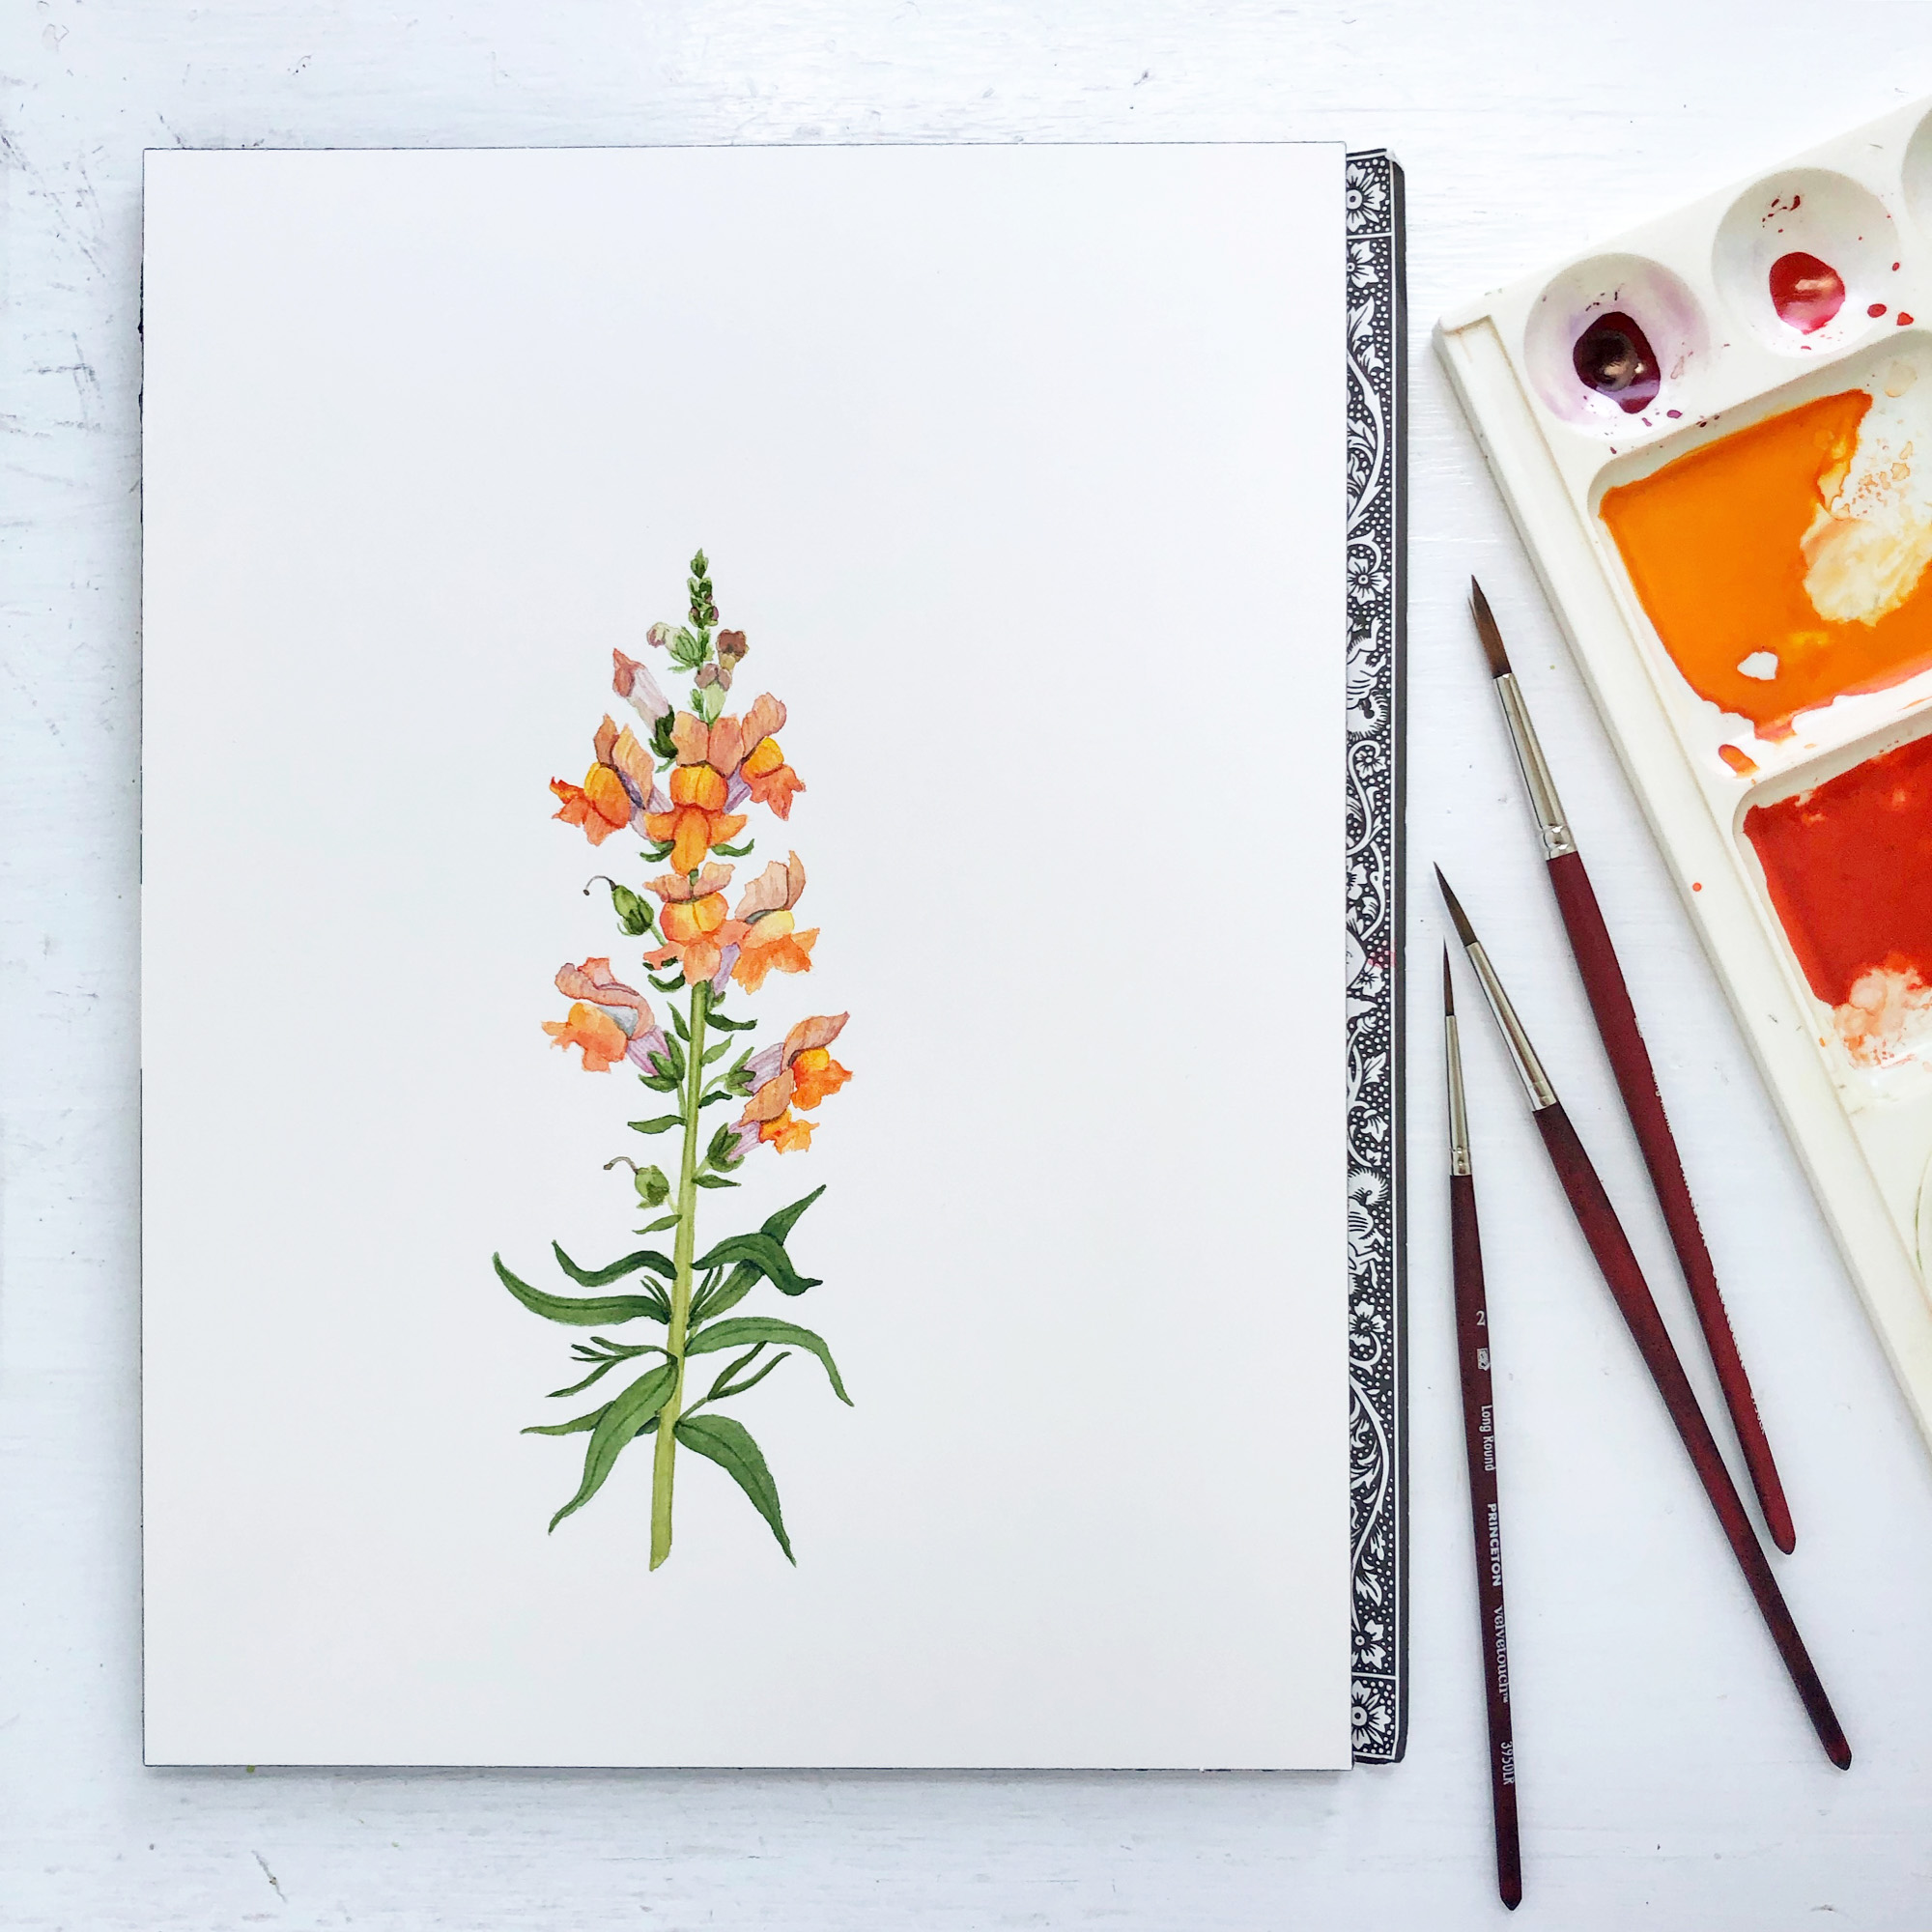 Snapdragon Watercolor Painting by Anne Butera